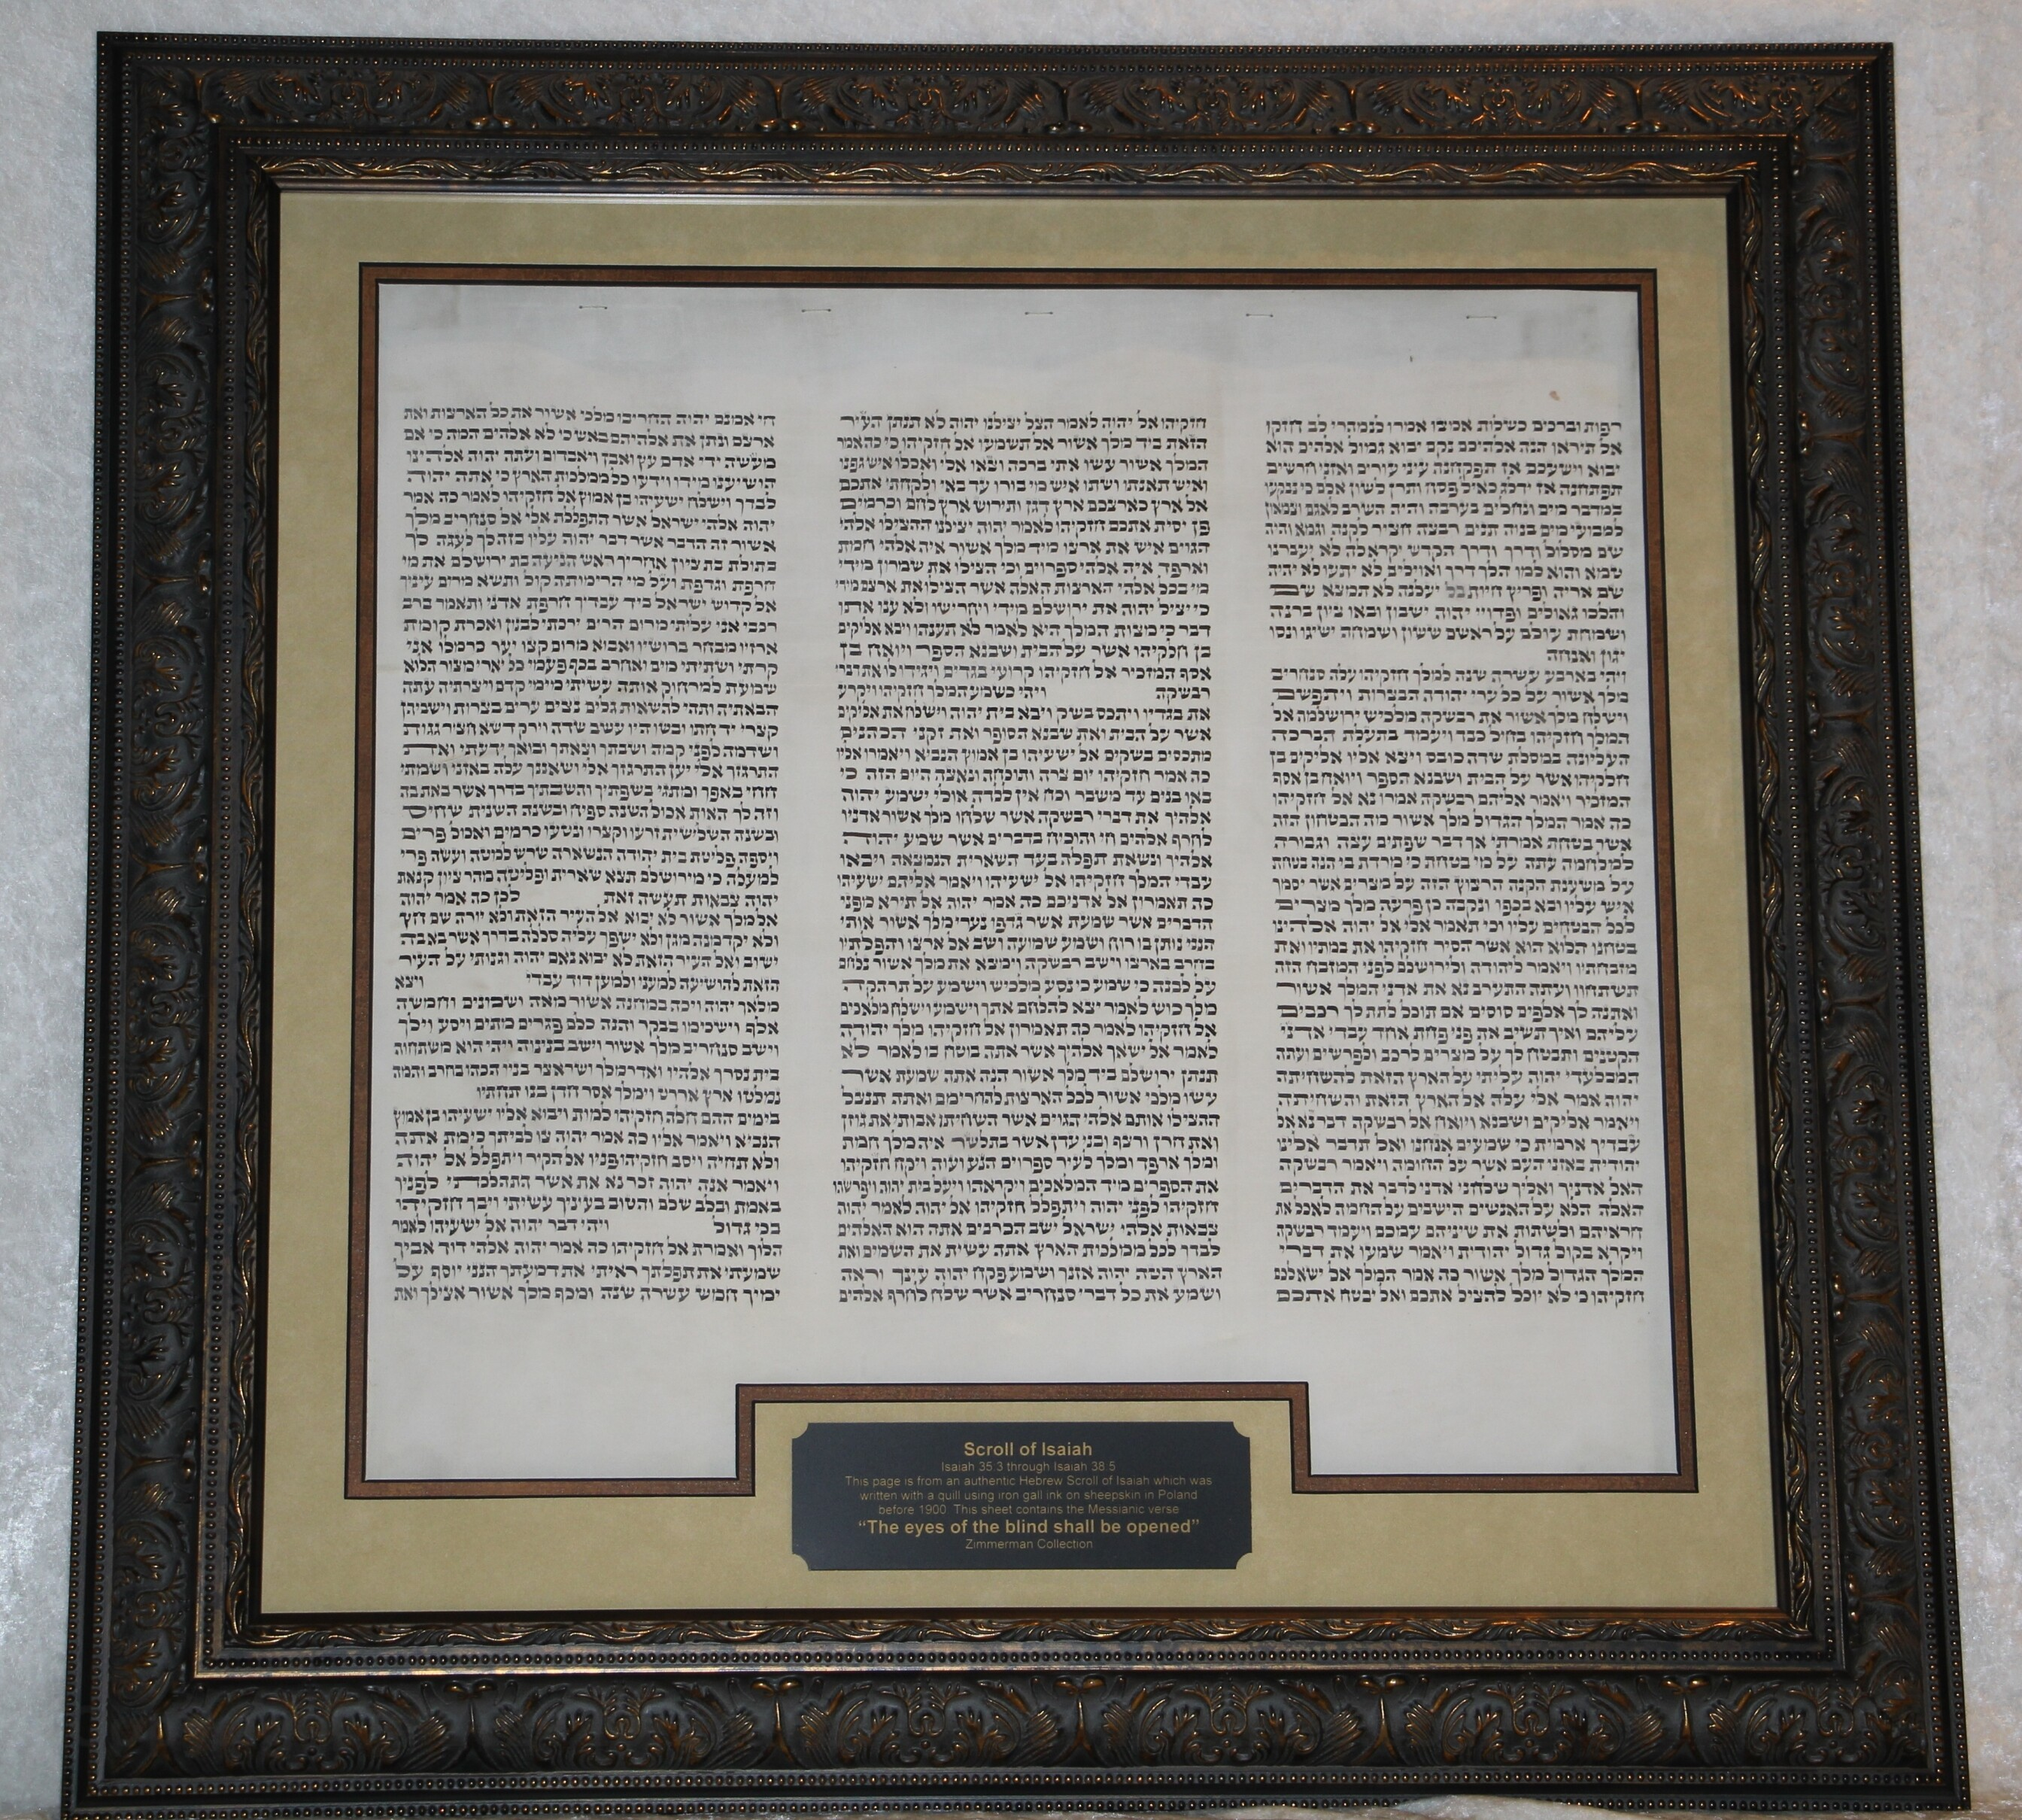 """Framed sheet from damaged Scroll of Isaiah """"The Eyes of the Blind Shall be Opened"""" Isaiah 35:3 through Isaiah 38:6a"""